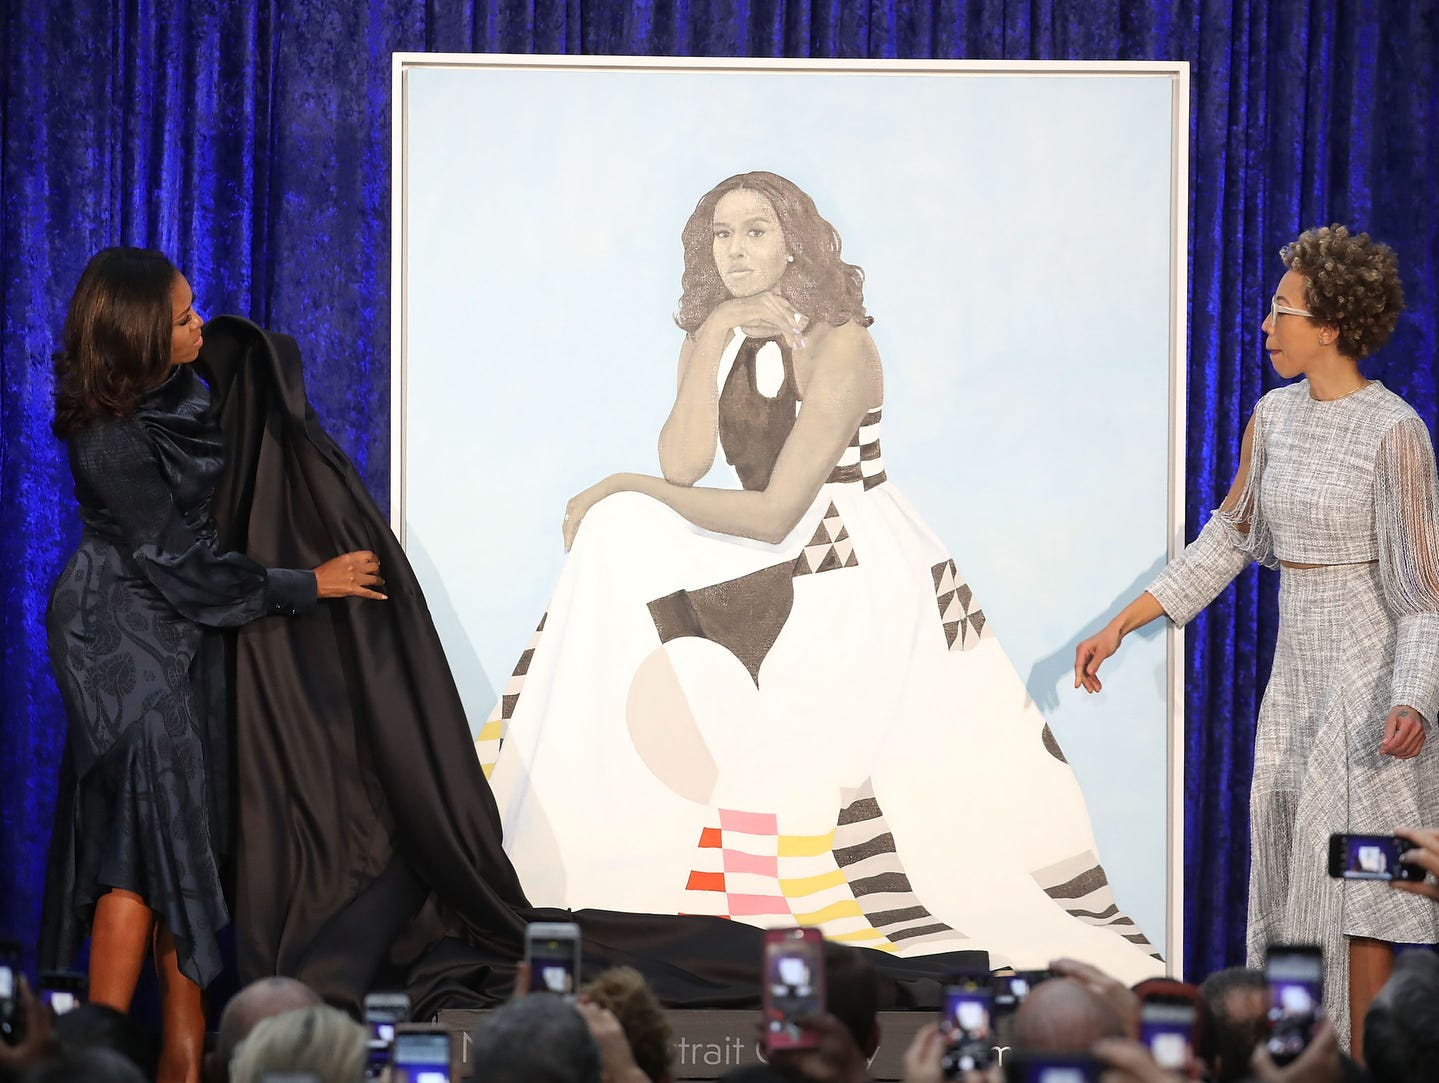 WASHINGTON, DC - FEBRUARY 12:  Former U.S. first lady Michelle Obama (L) and artist Amy Sherald unveil her portrait during a ceremony at the Smithsonian's National Portrait Gallery, on February 12, 2018 in Washington, DC. The portraits were commissioned by the Gallery, for Kehinde Wiley to create President Obama's portrait, and Amy Sherald that of Michelle Obama.  (Photo by Mark Wilson/Getty Images) ORG XMIT: 775109529 ORIG FILE ID: 917433482